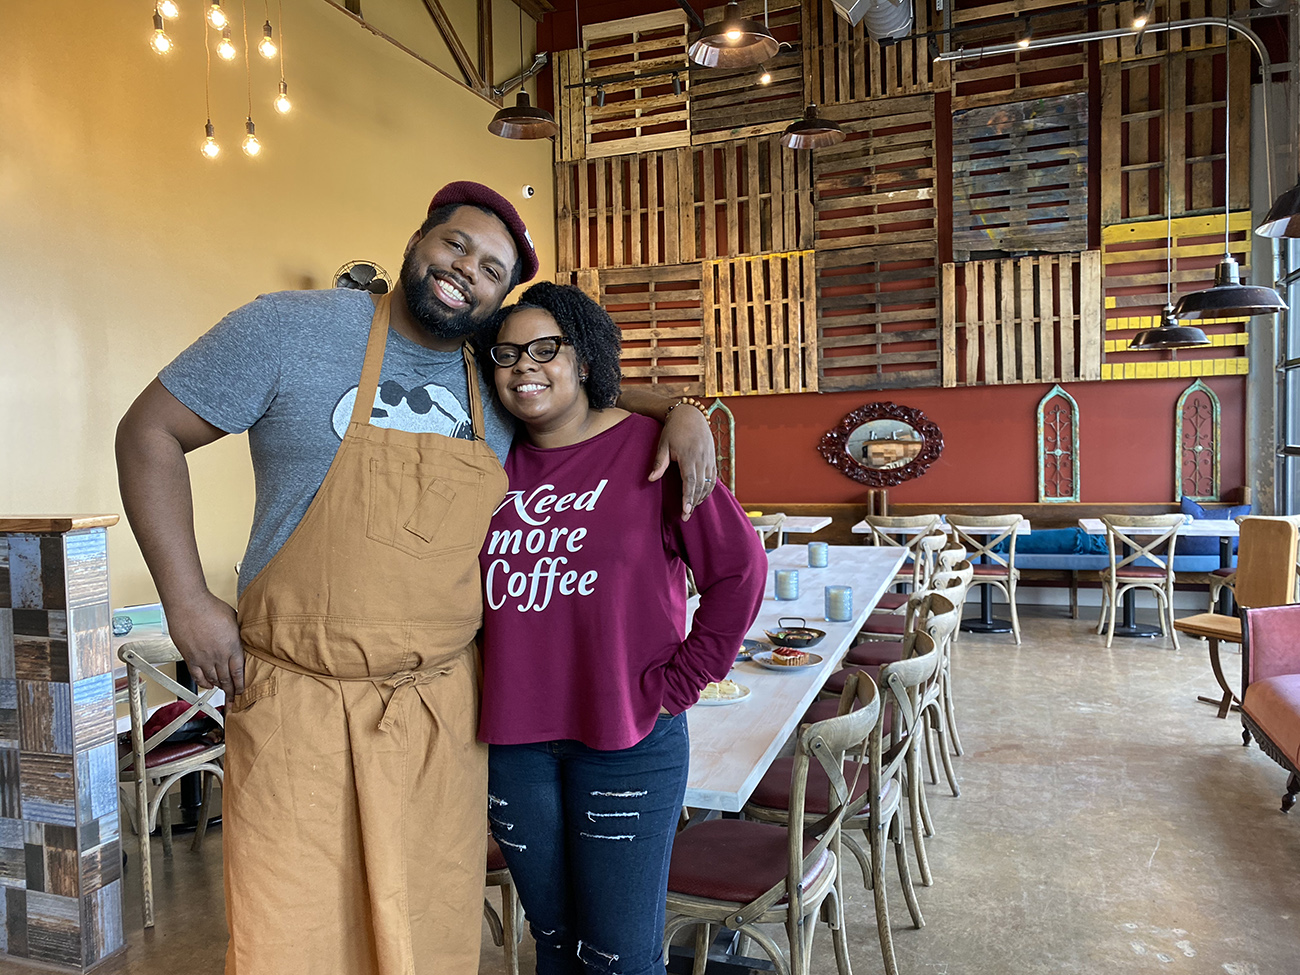 Leah & Louise, Camp North End's first restaurant, is now open